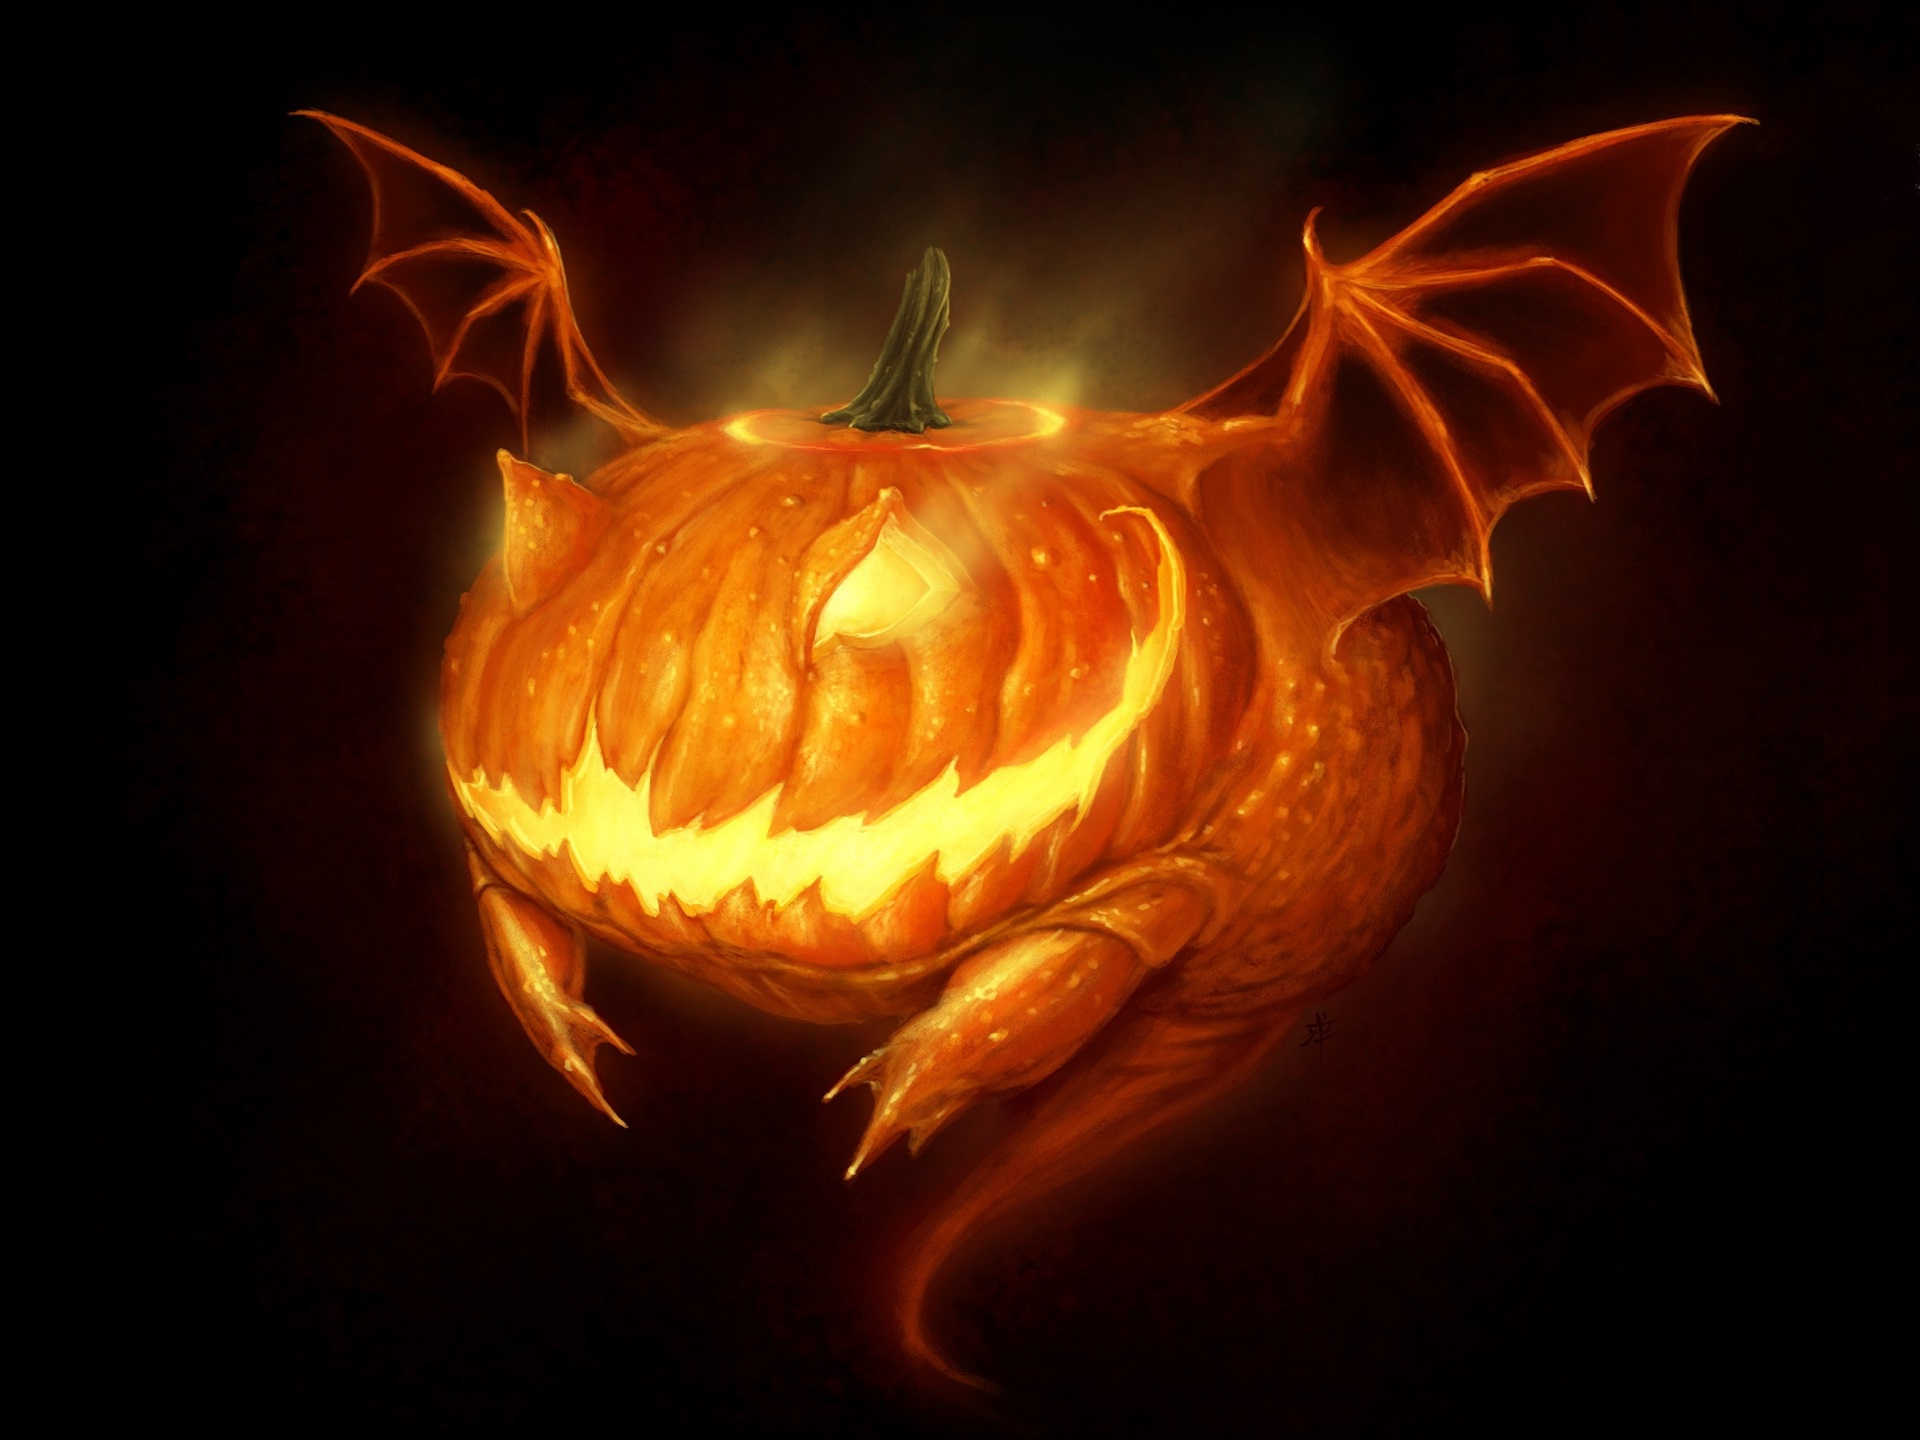 Wallpaper Of Creature Halloween Horror Jack O Lantern